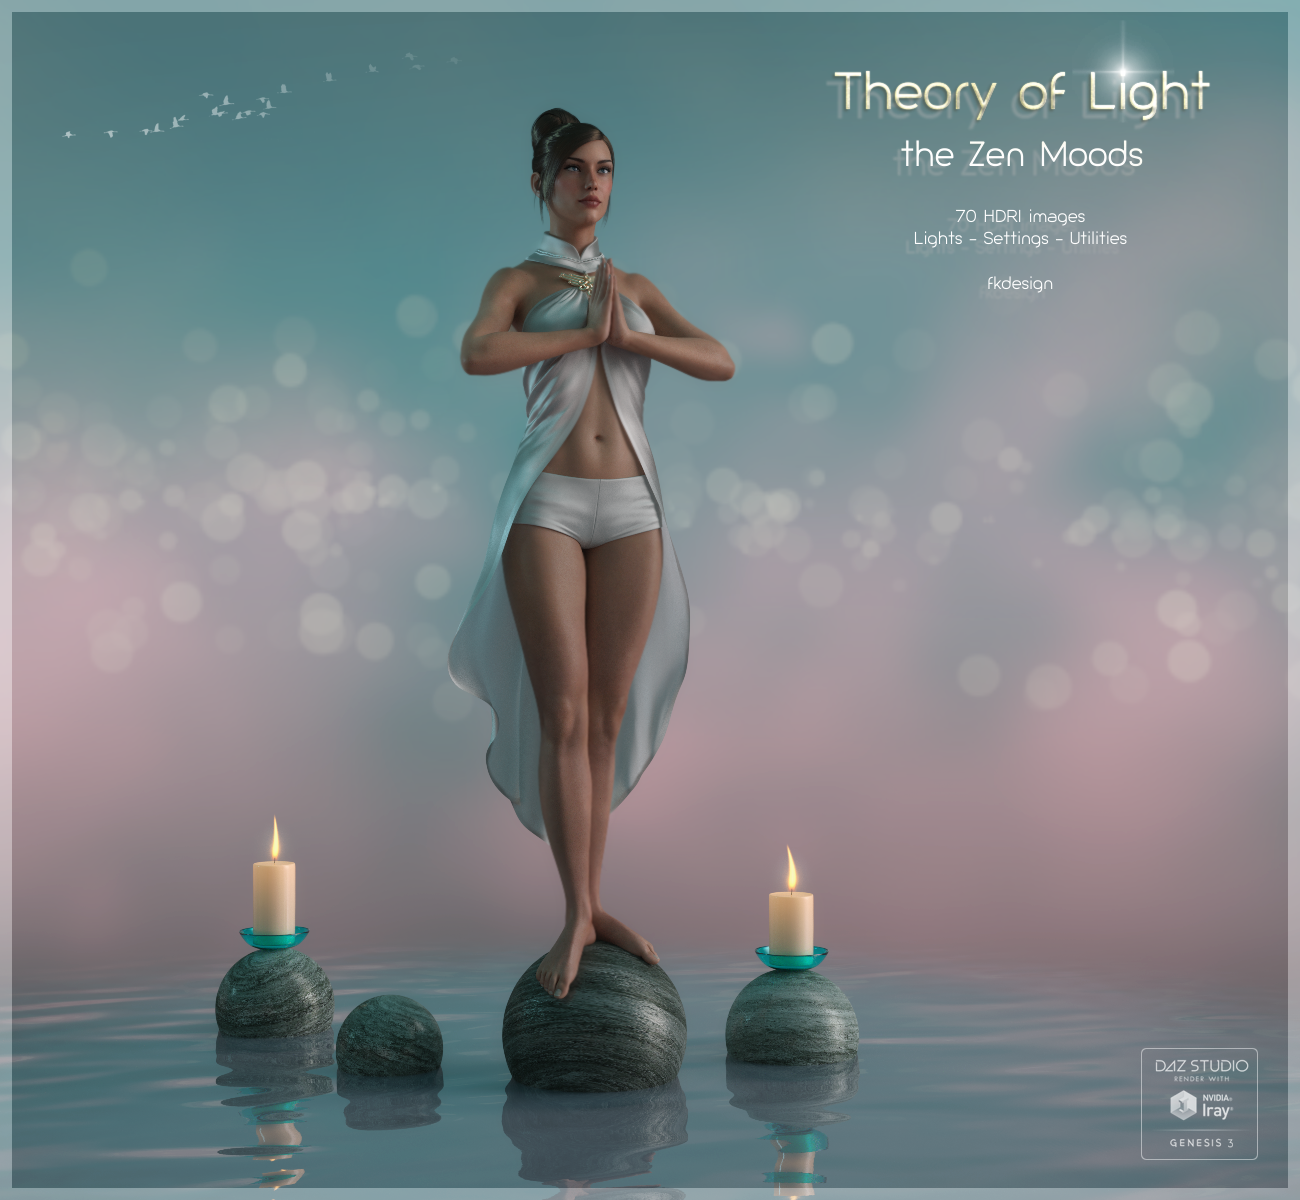 Theory of Light - Zen Moods Iray Lights and HDRIs